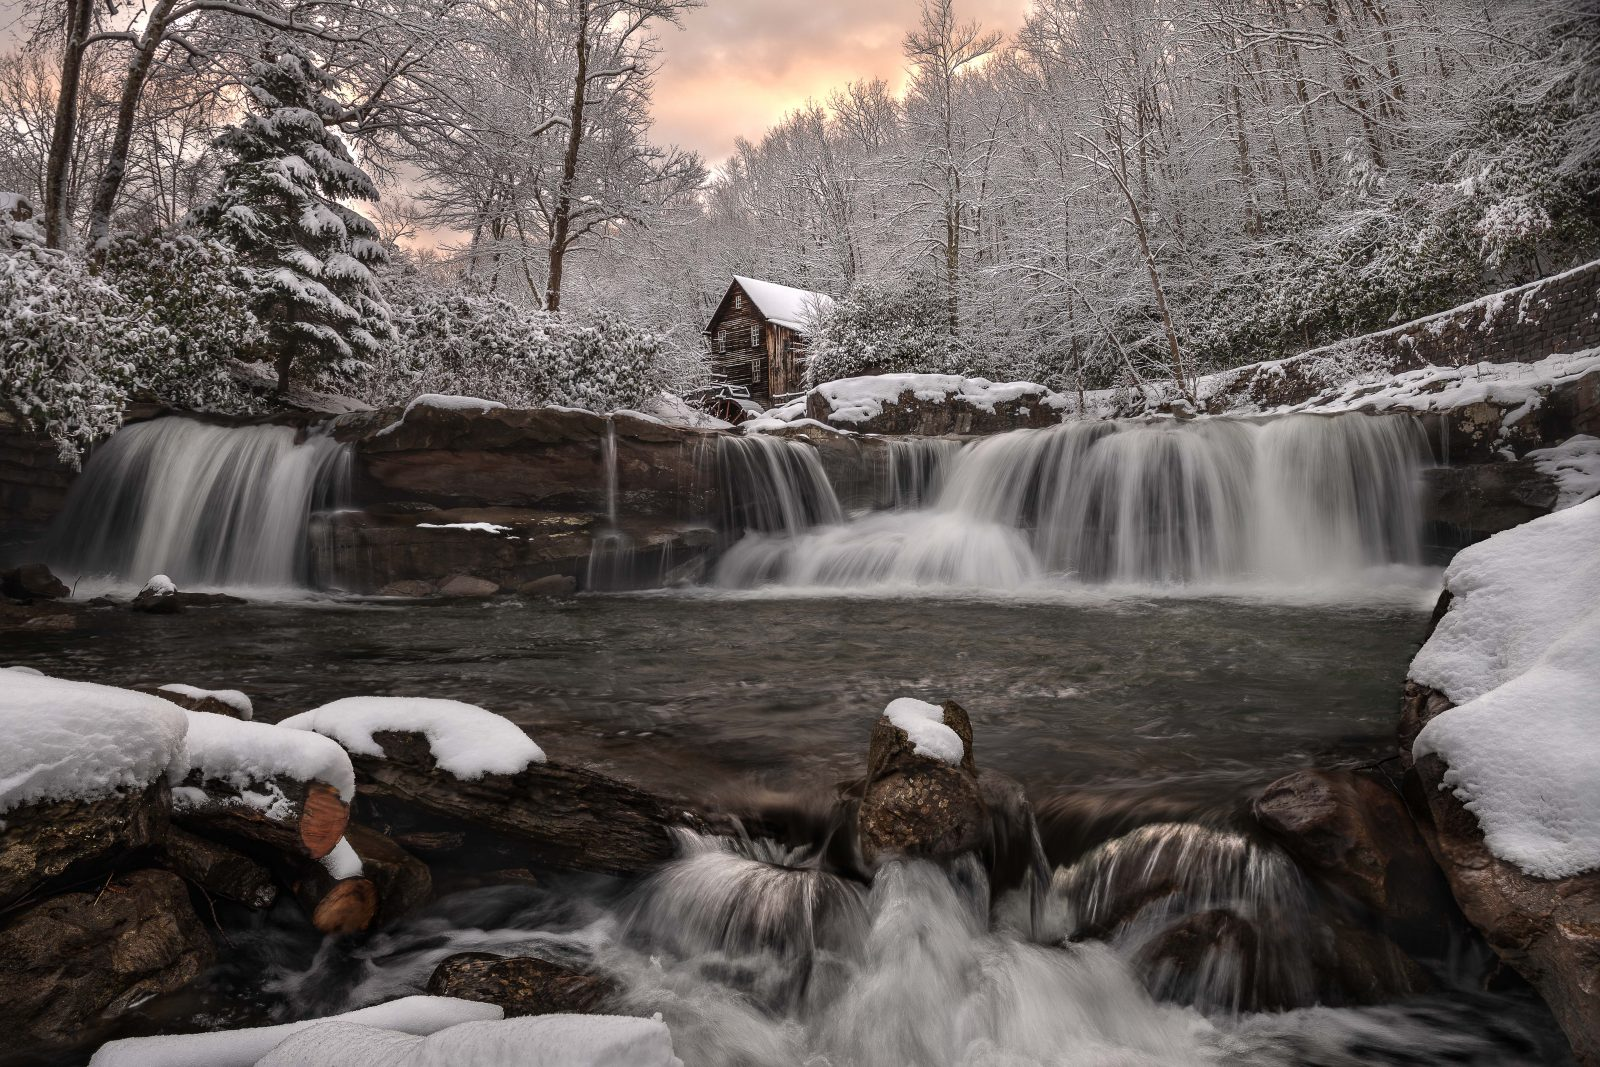 Winter at the Grist Mill